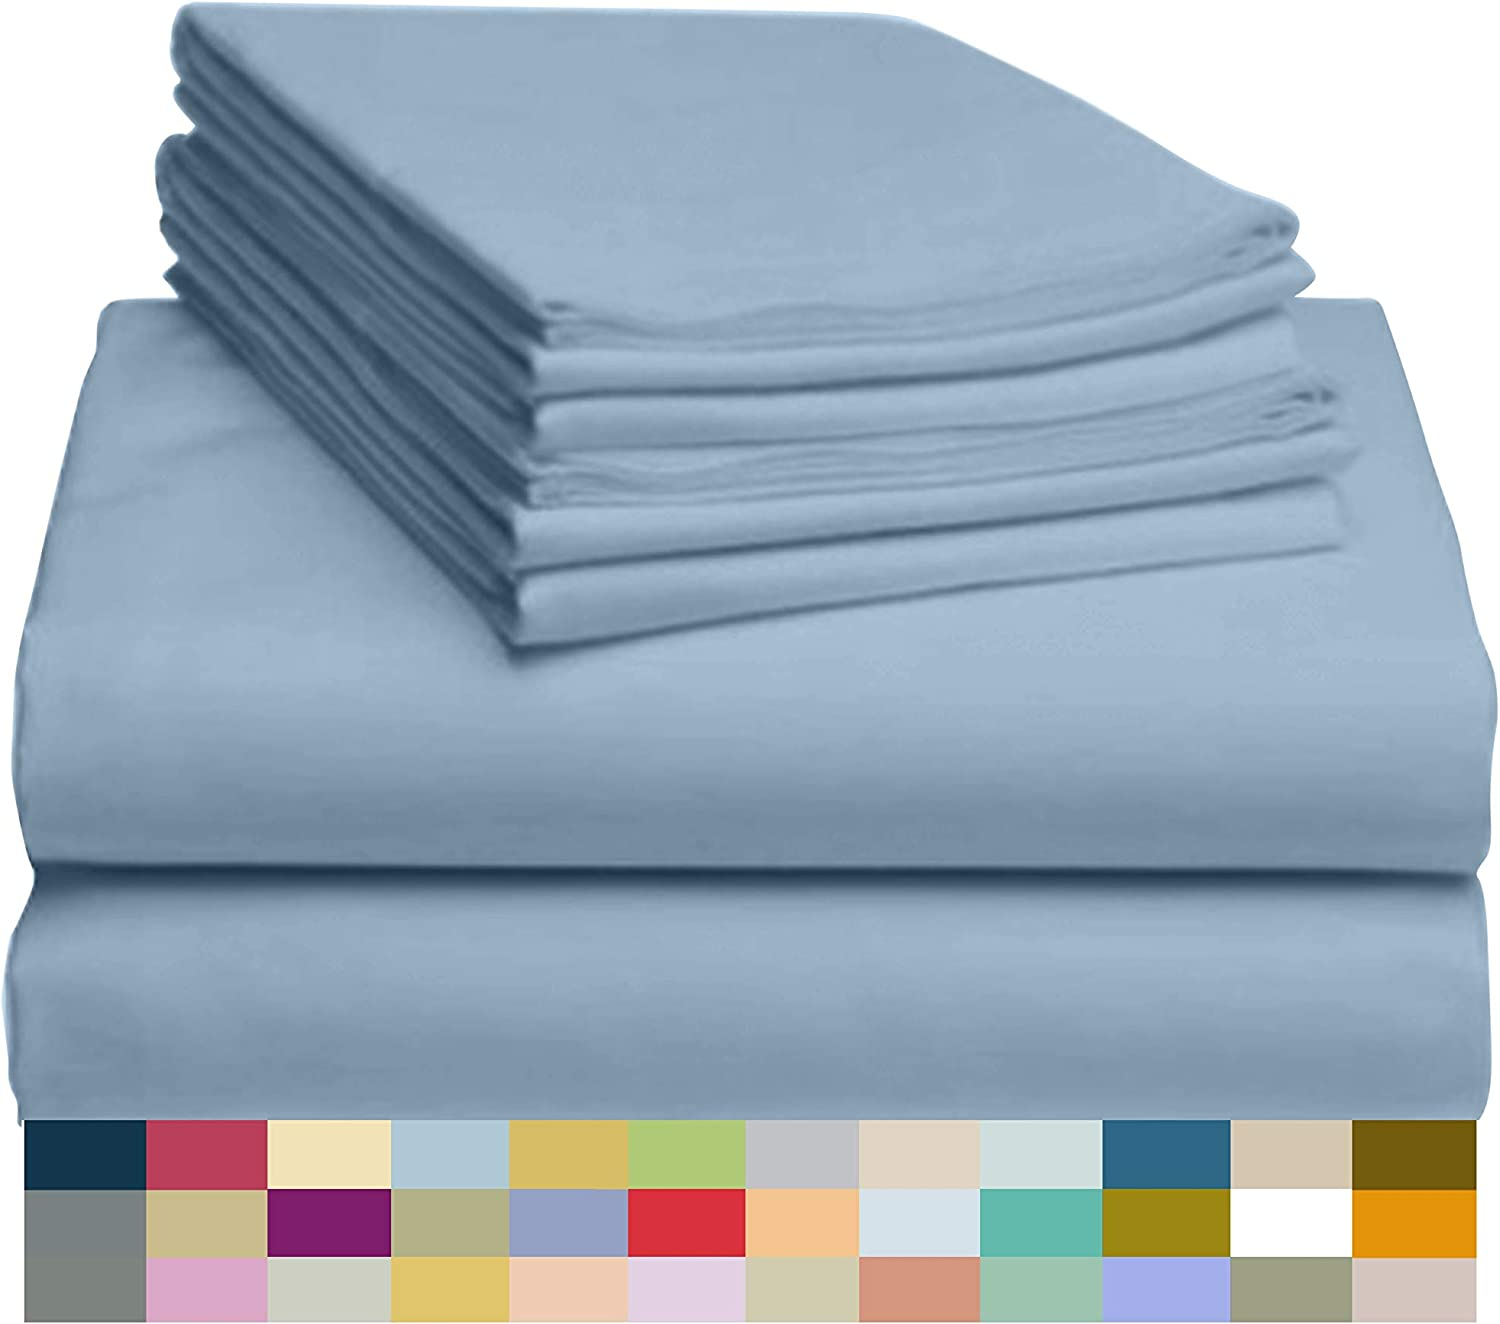 """LuxClub 6 PC Sheet Set Bamboo Sheets Deep Pockets 18"""" Eco Friendly Wrinkle Free Sheets Hypoallergenic Anti-Bacteria Machine Washable Hotel Bedding Silky Soft - Sky King"""